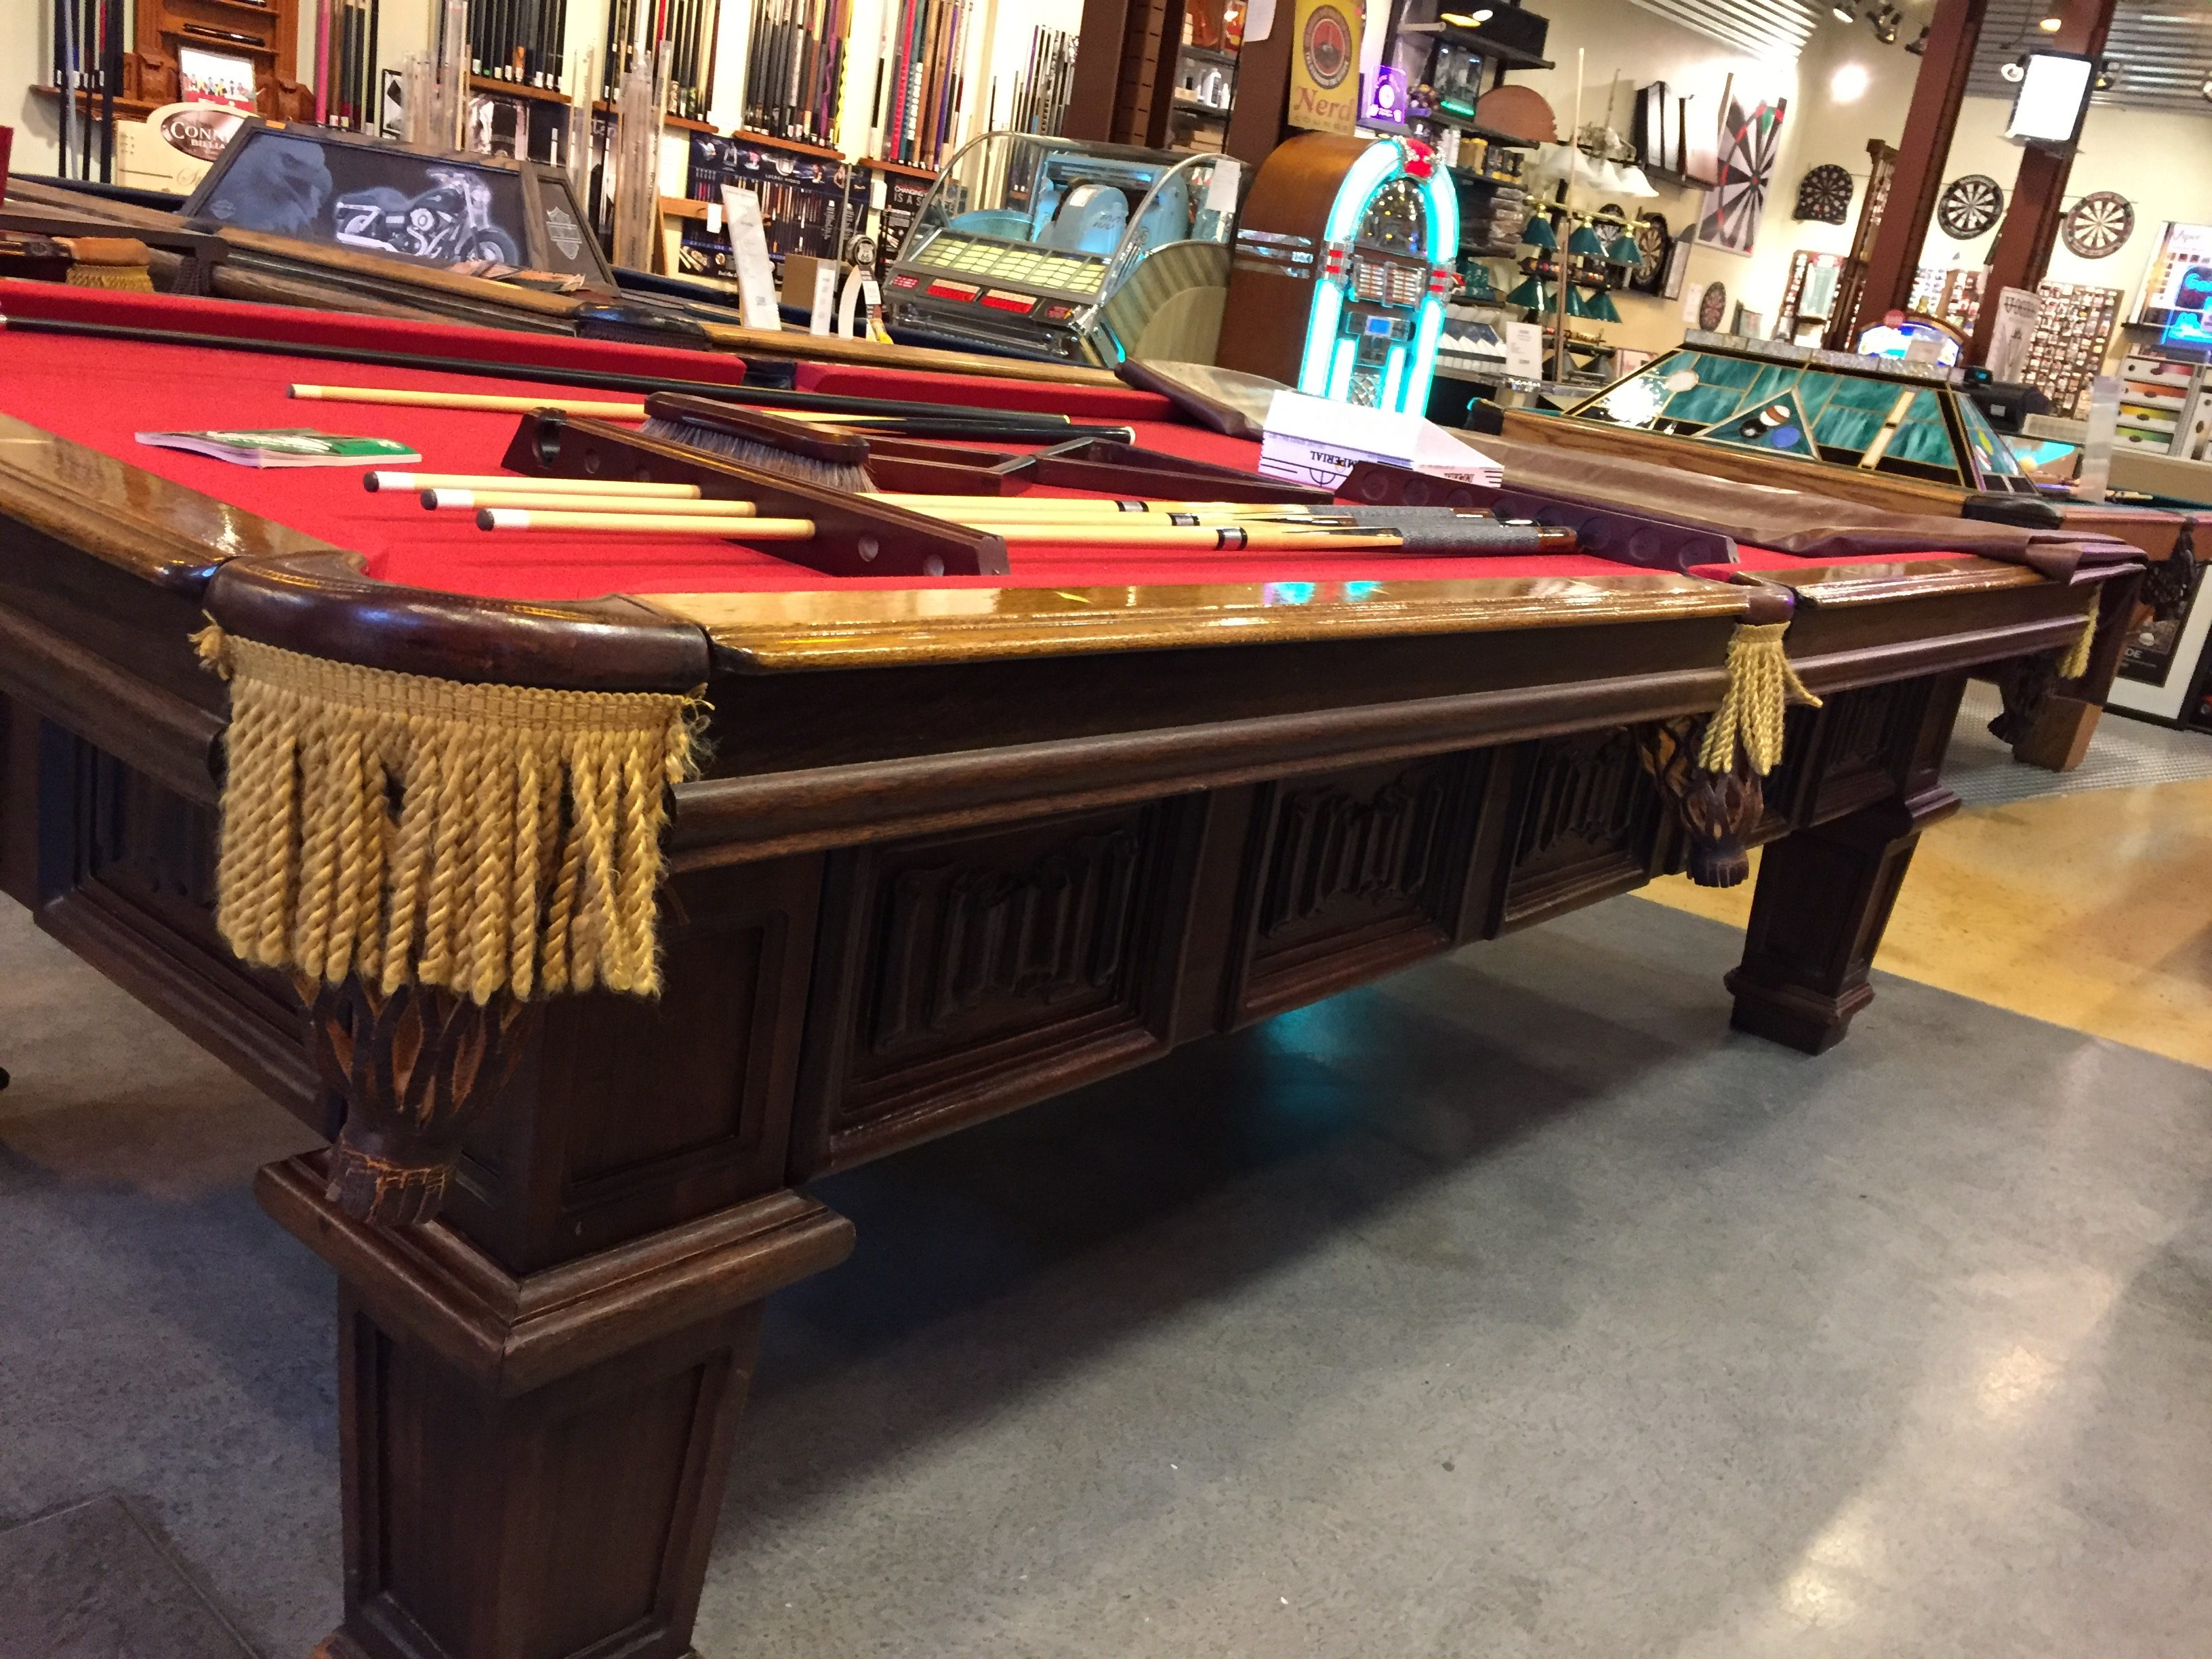 Games People Play Ft Brunswick Pool Table - New brunswick pool table